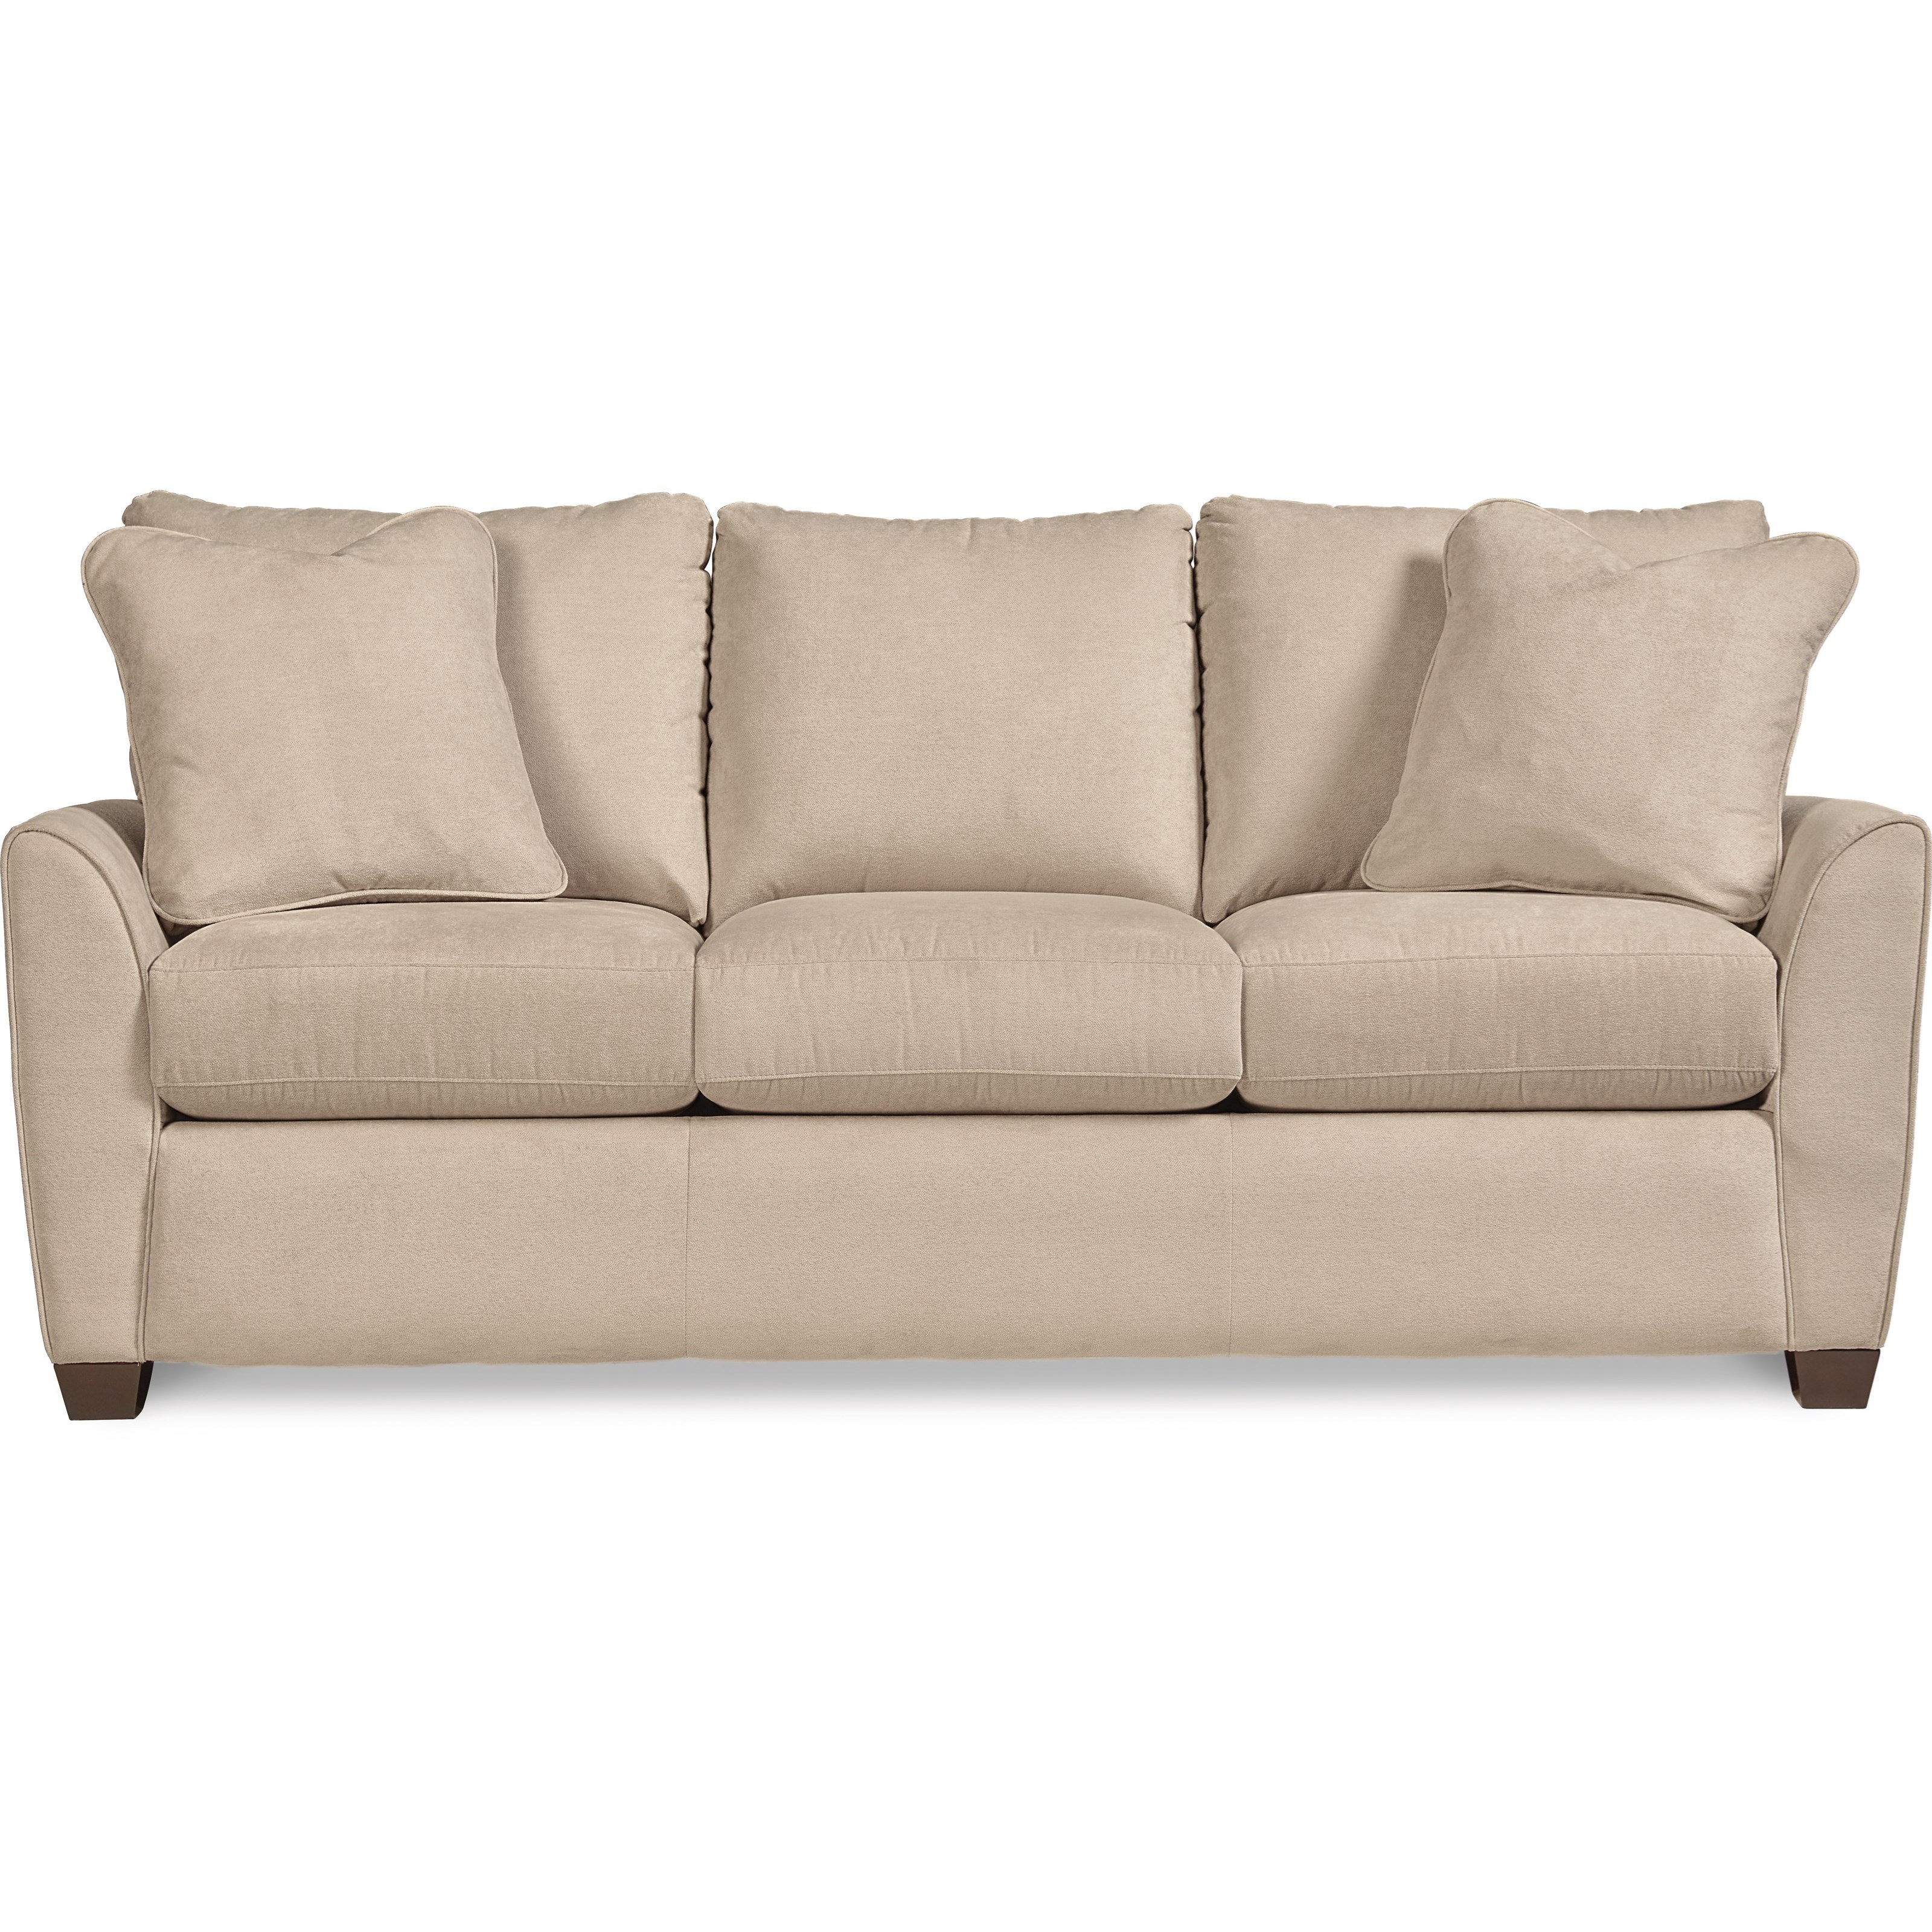 Amy Queen Sleeper Sofa by La-Z-Boy at Sparks HomeStore